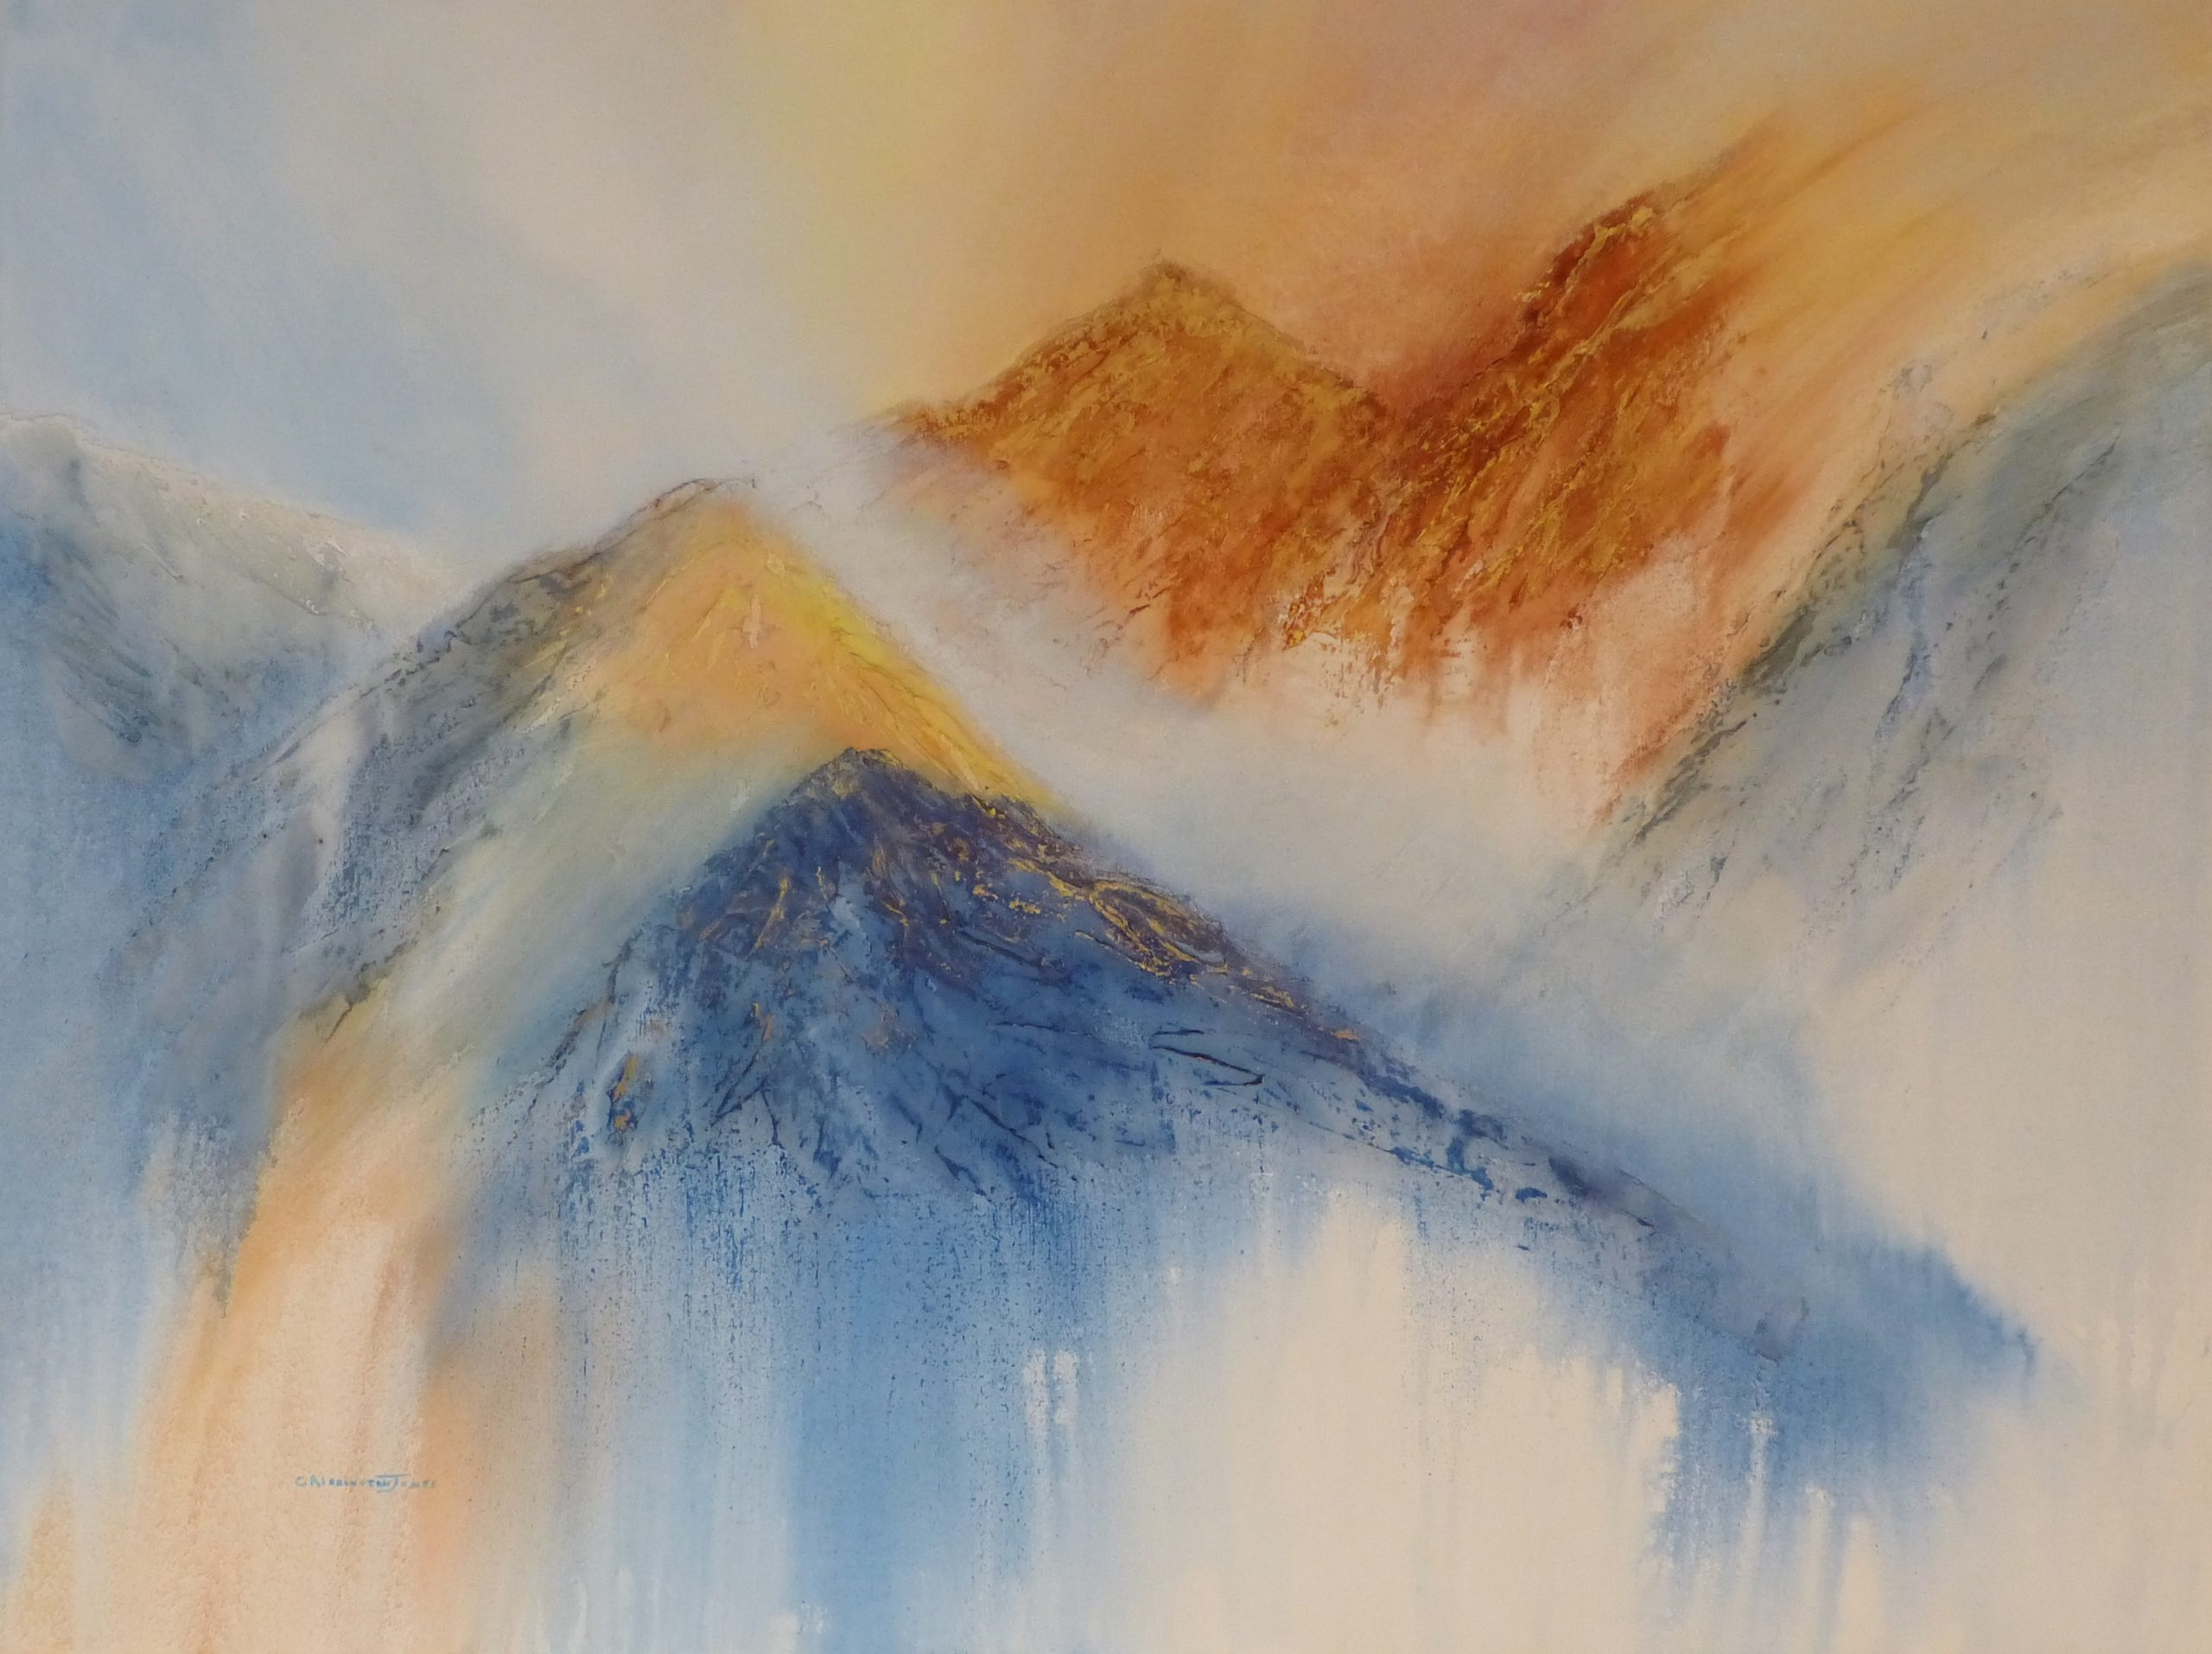 Abstract painting of misty mountains at sunset